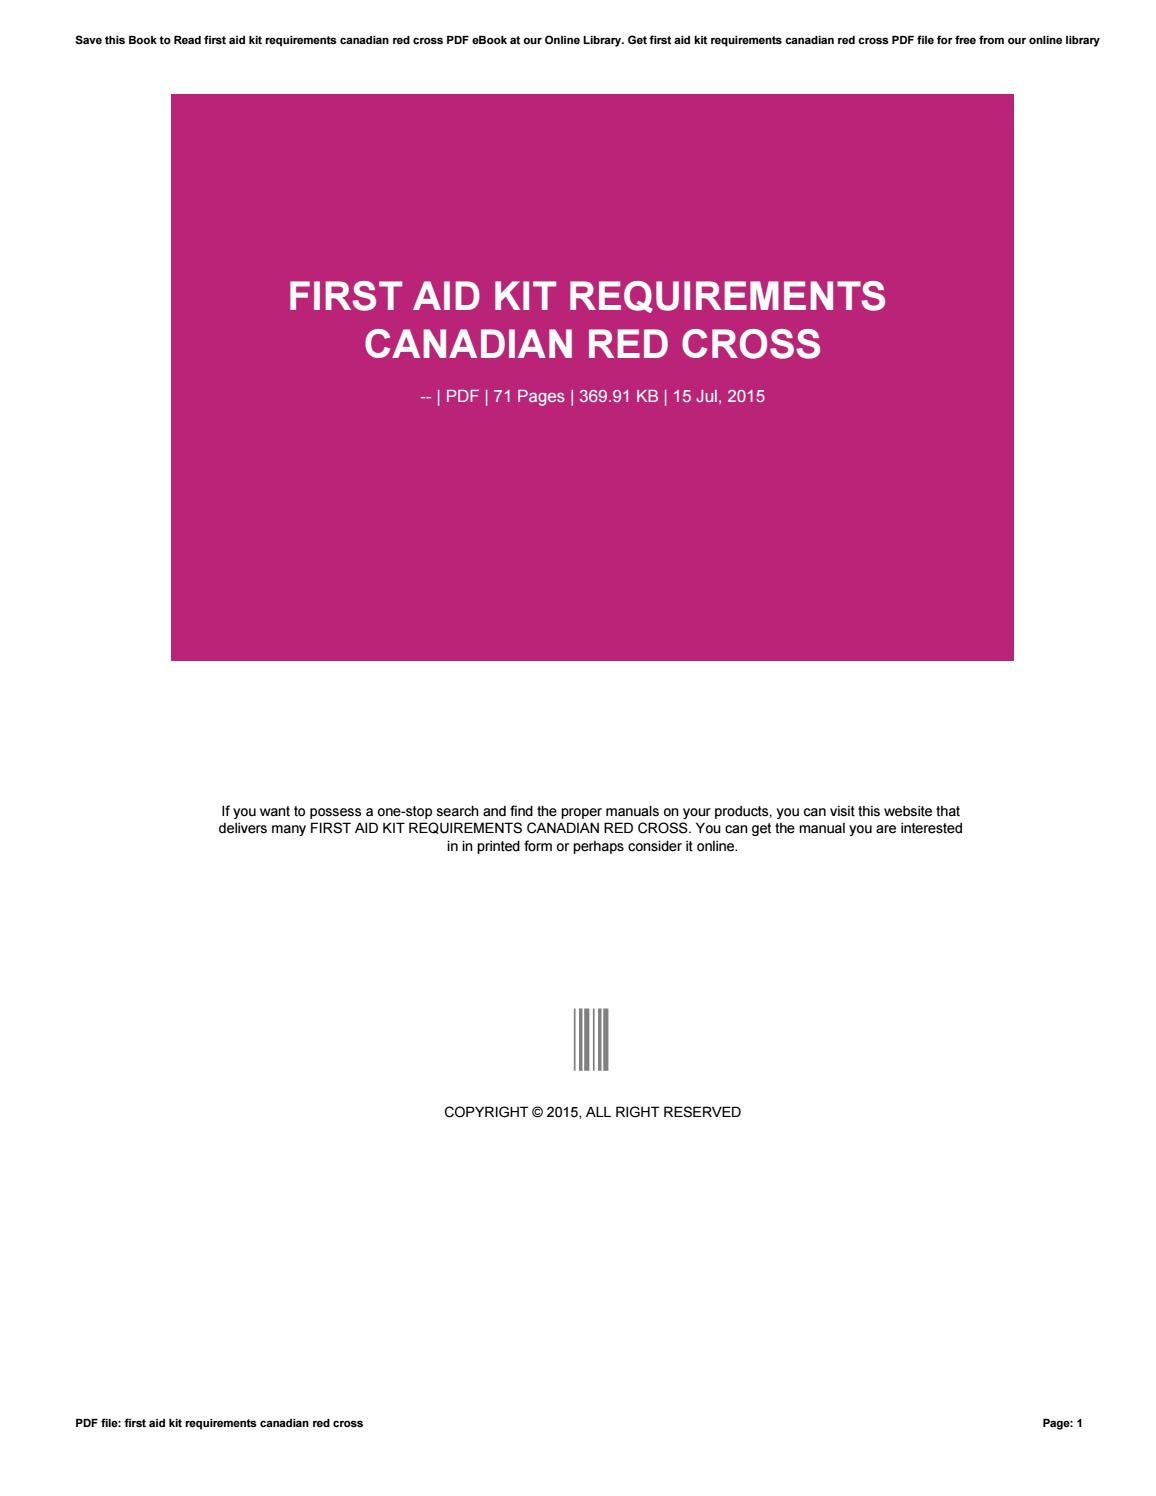 First aid manual ebook manual array first aid kit requirements canadian red cross by squirtsnap27 issuu rh issuu fandeluxe Gallery